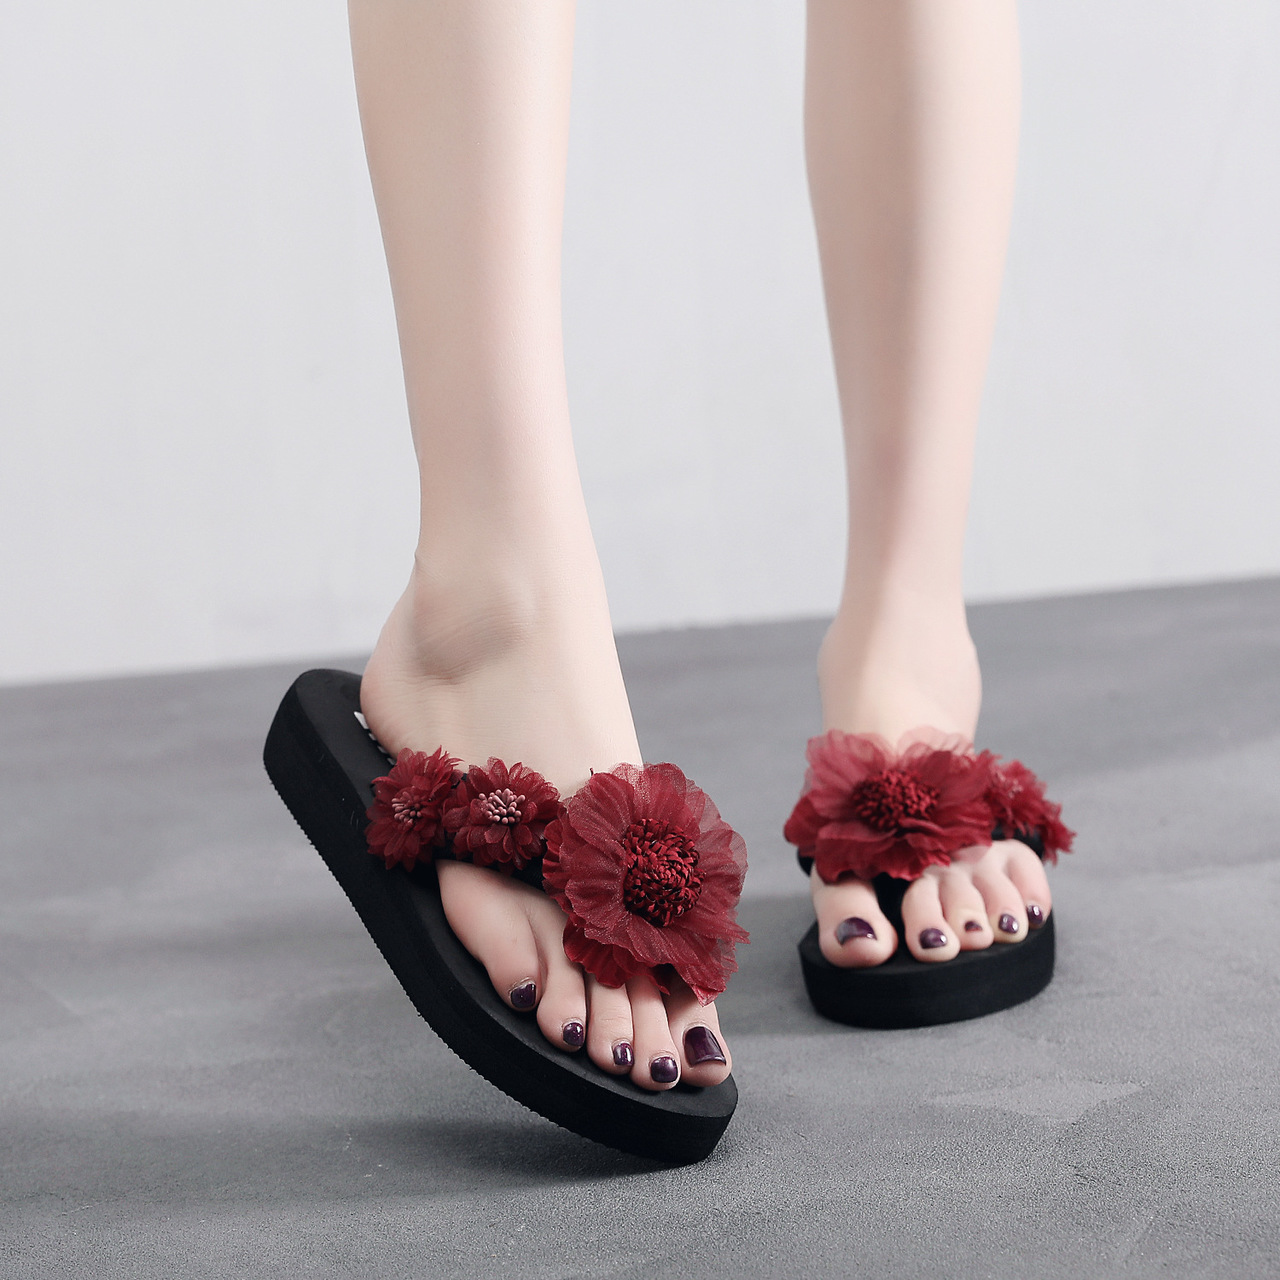 4cf3f0954 Women s Slippers Wedge Platform Thong Flip Flops Sandals Shoes Beach Casual  Open Toe Flat Outside pattern 1 36  Product No  10896420. Item specifics   Brand